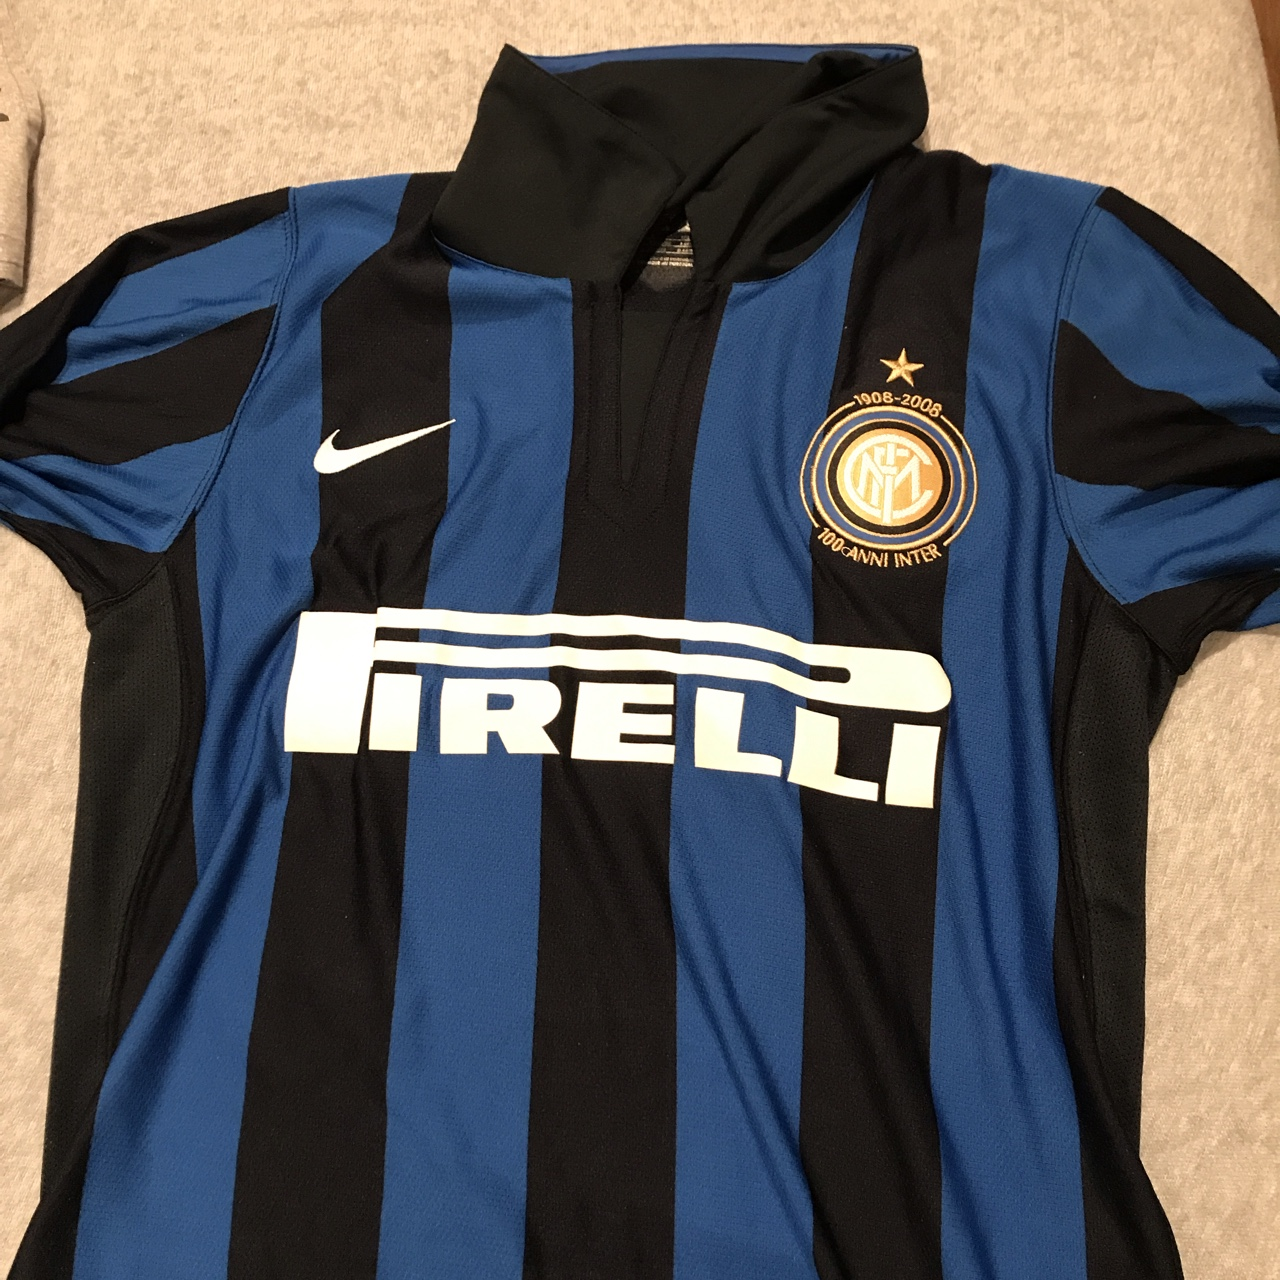 cheap for discount 2acda 80484 Nike INTER MILAN FC 1908-2008 100th Anniversary... - Depop